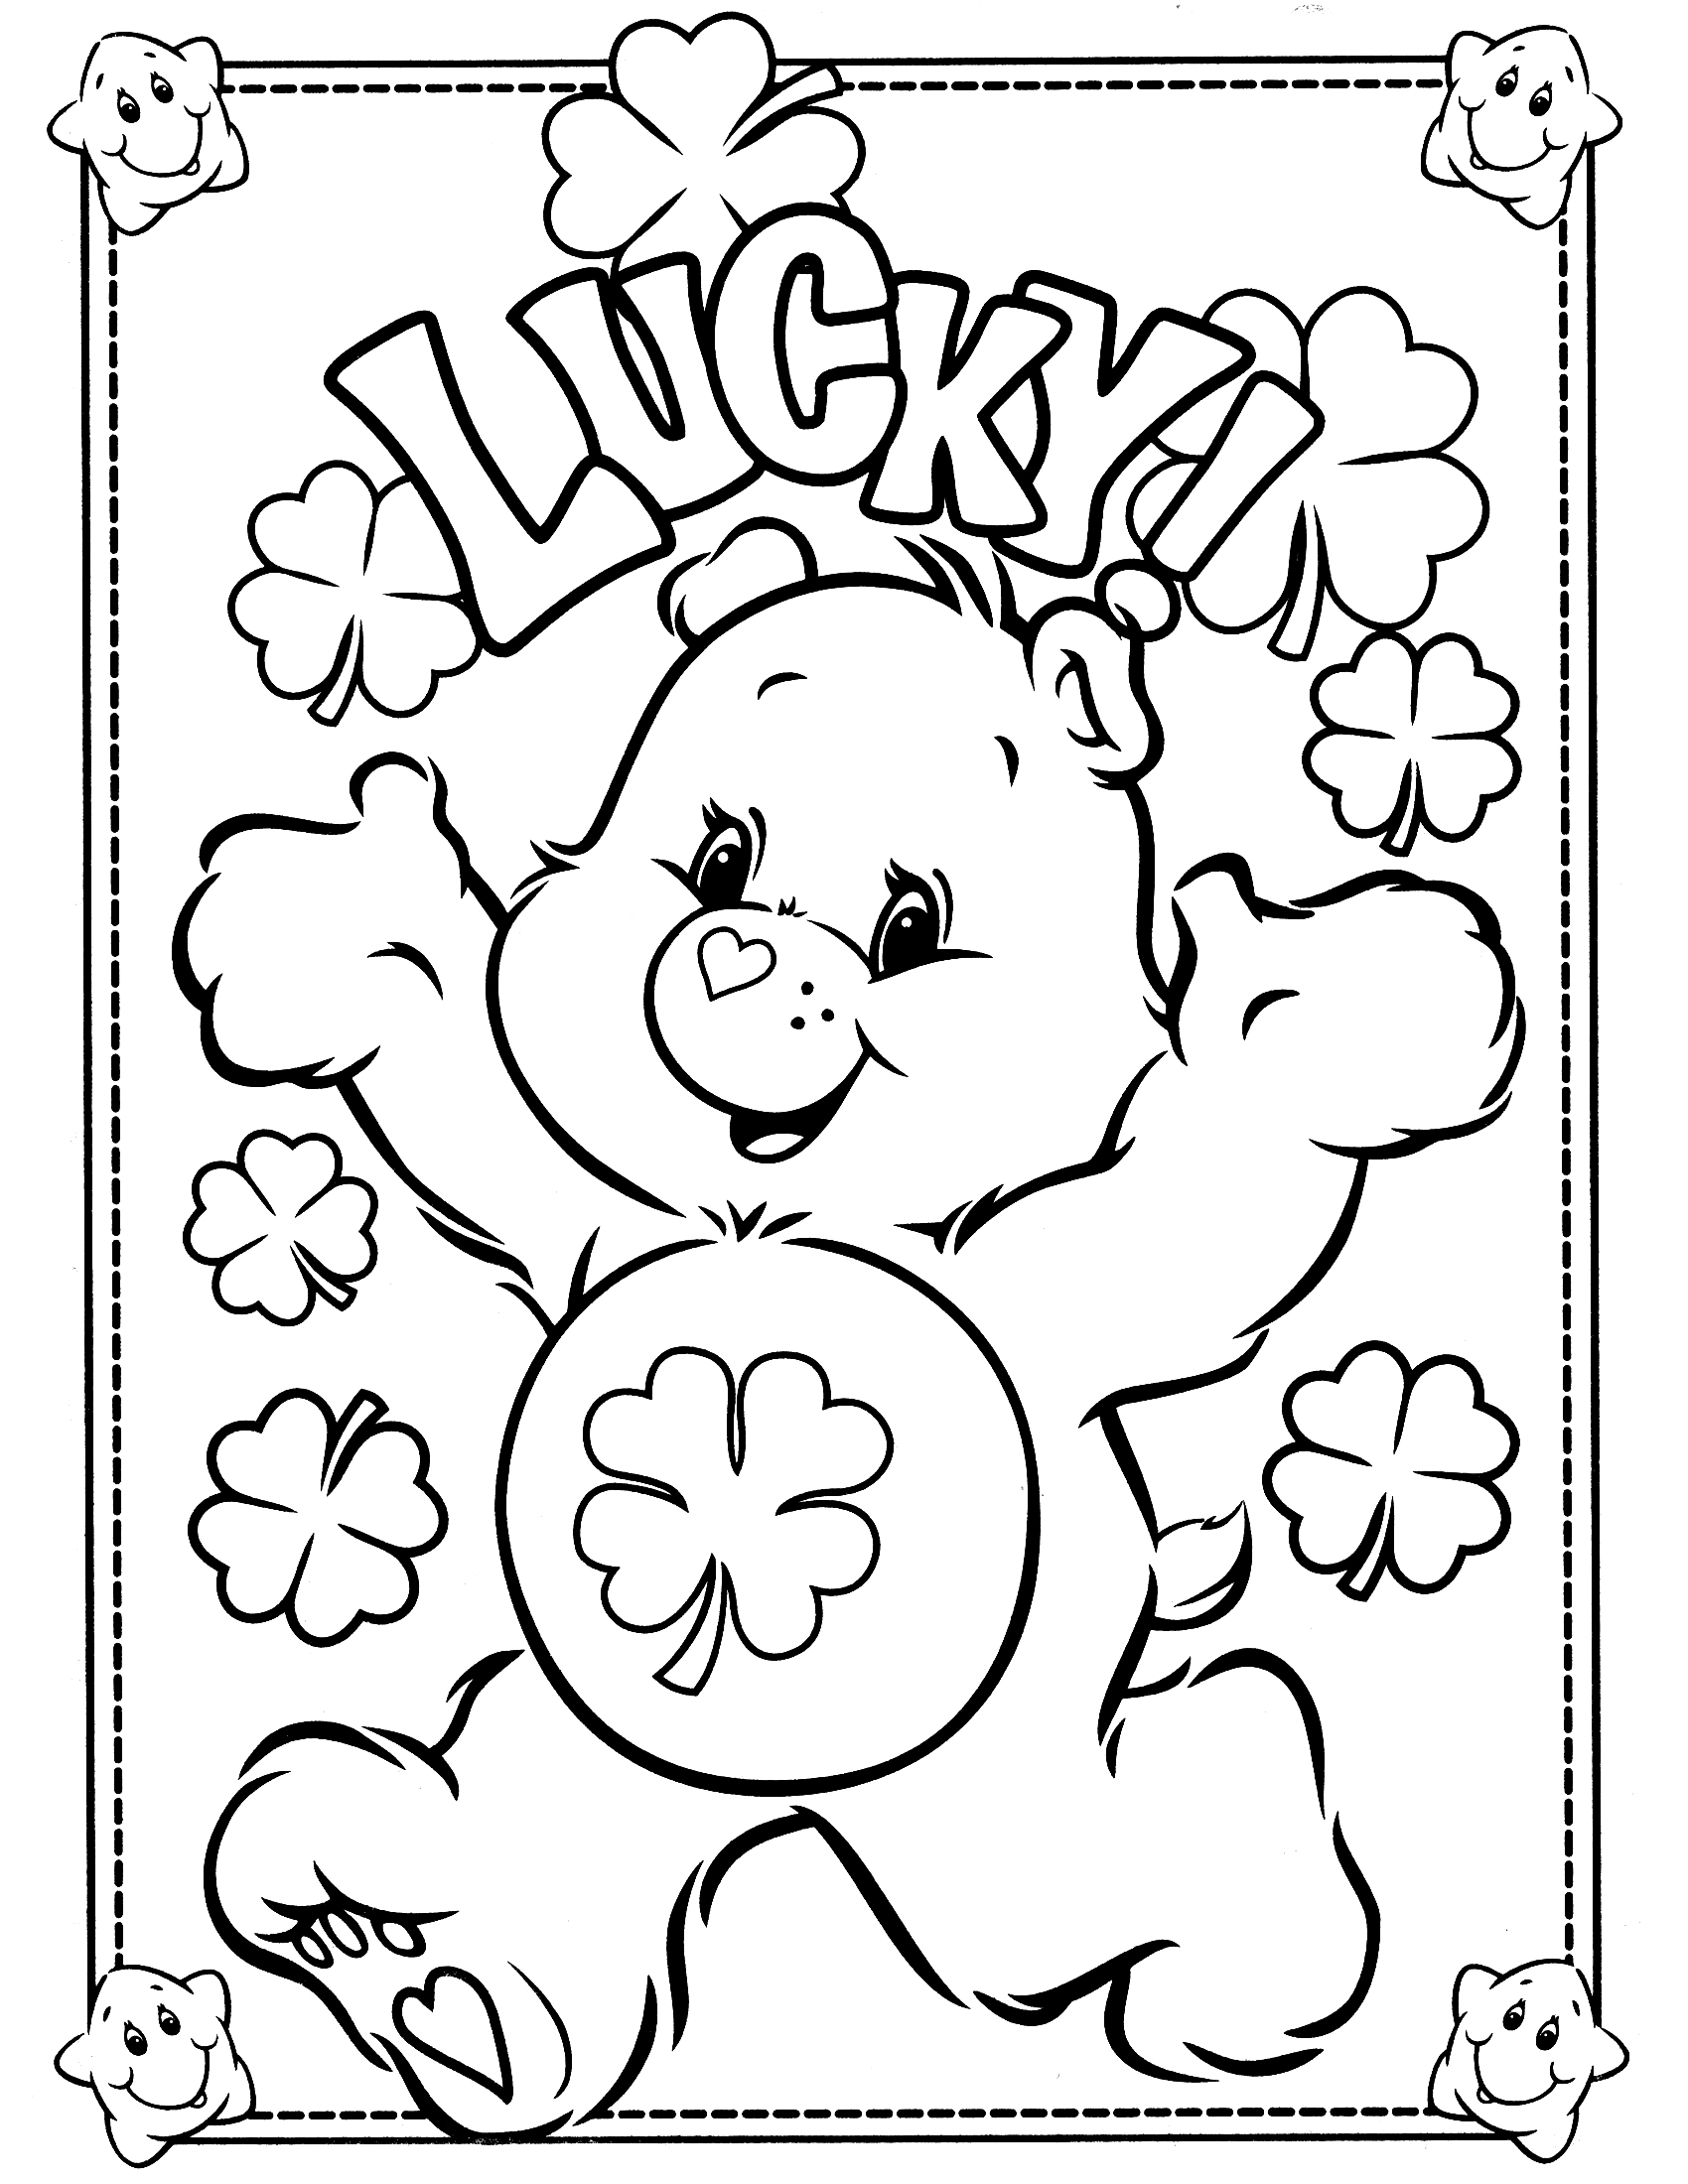 coloring pages of bears care bears coloring coloring pages kidsuki bears pages coloring of